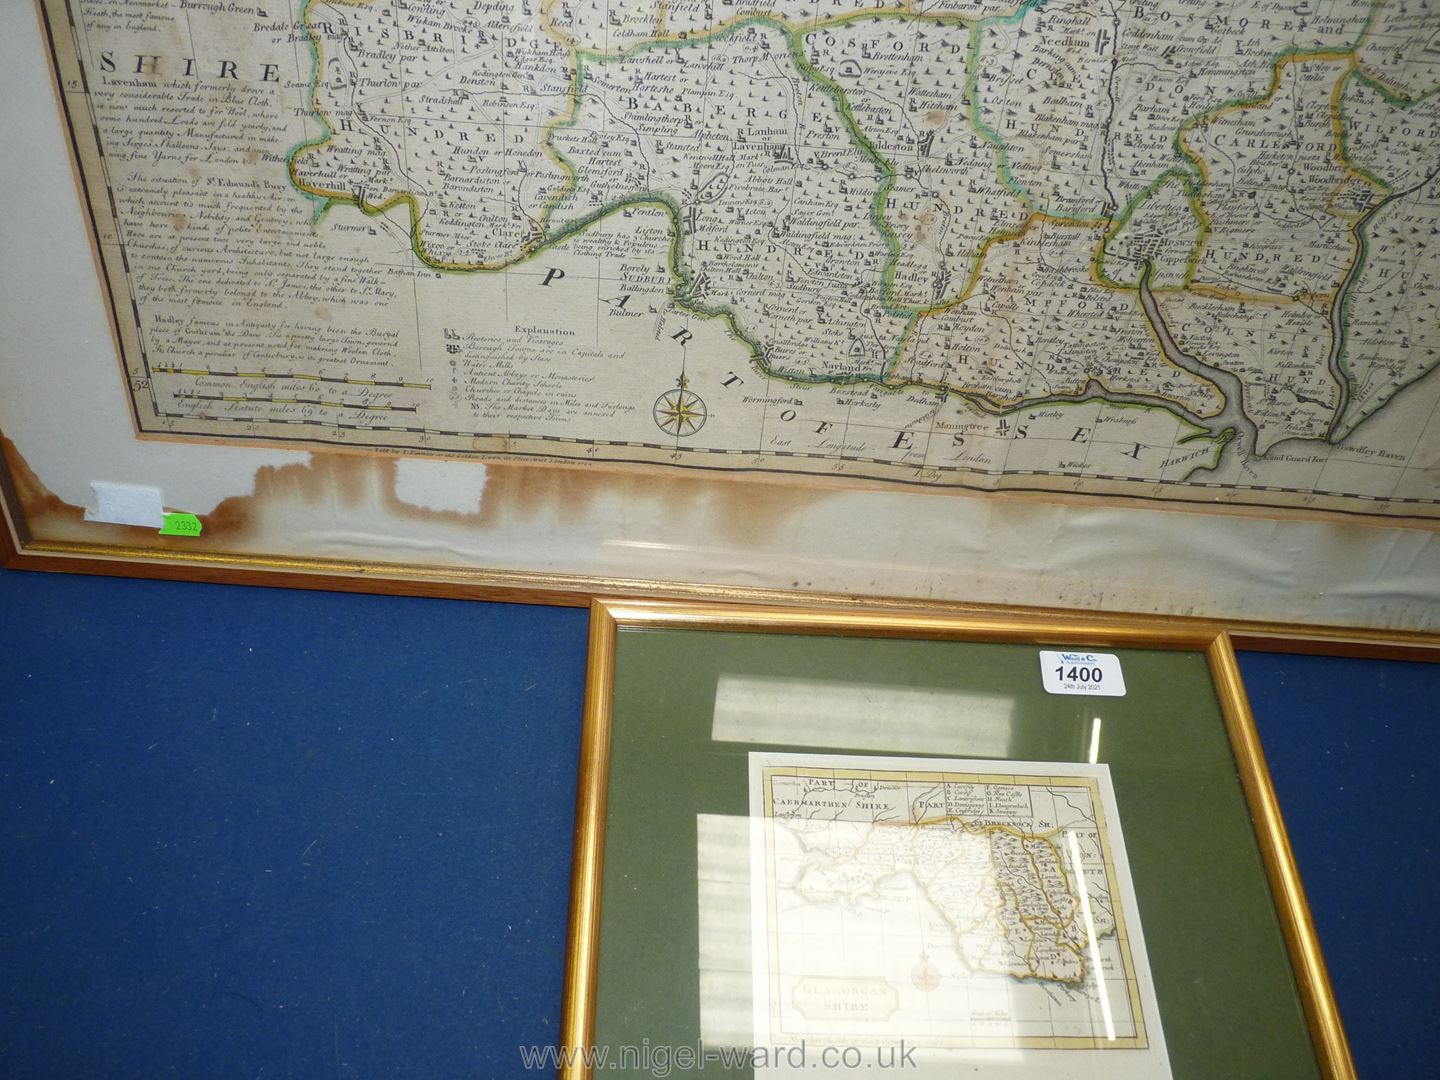 """A large map of Suffolk (water damage), 33 1/2"""" x 26 1/2"""" and small map of Glamorganshire. - Image 3 of 3"""